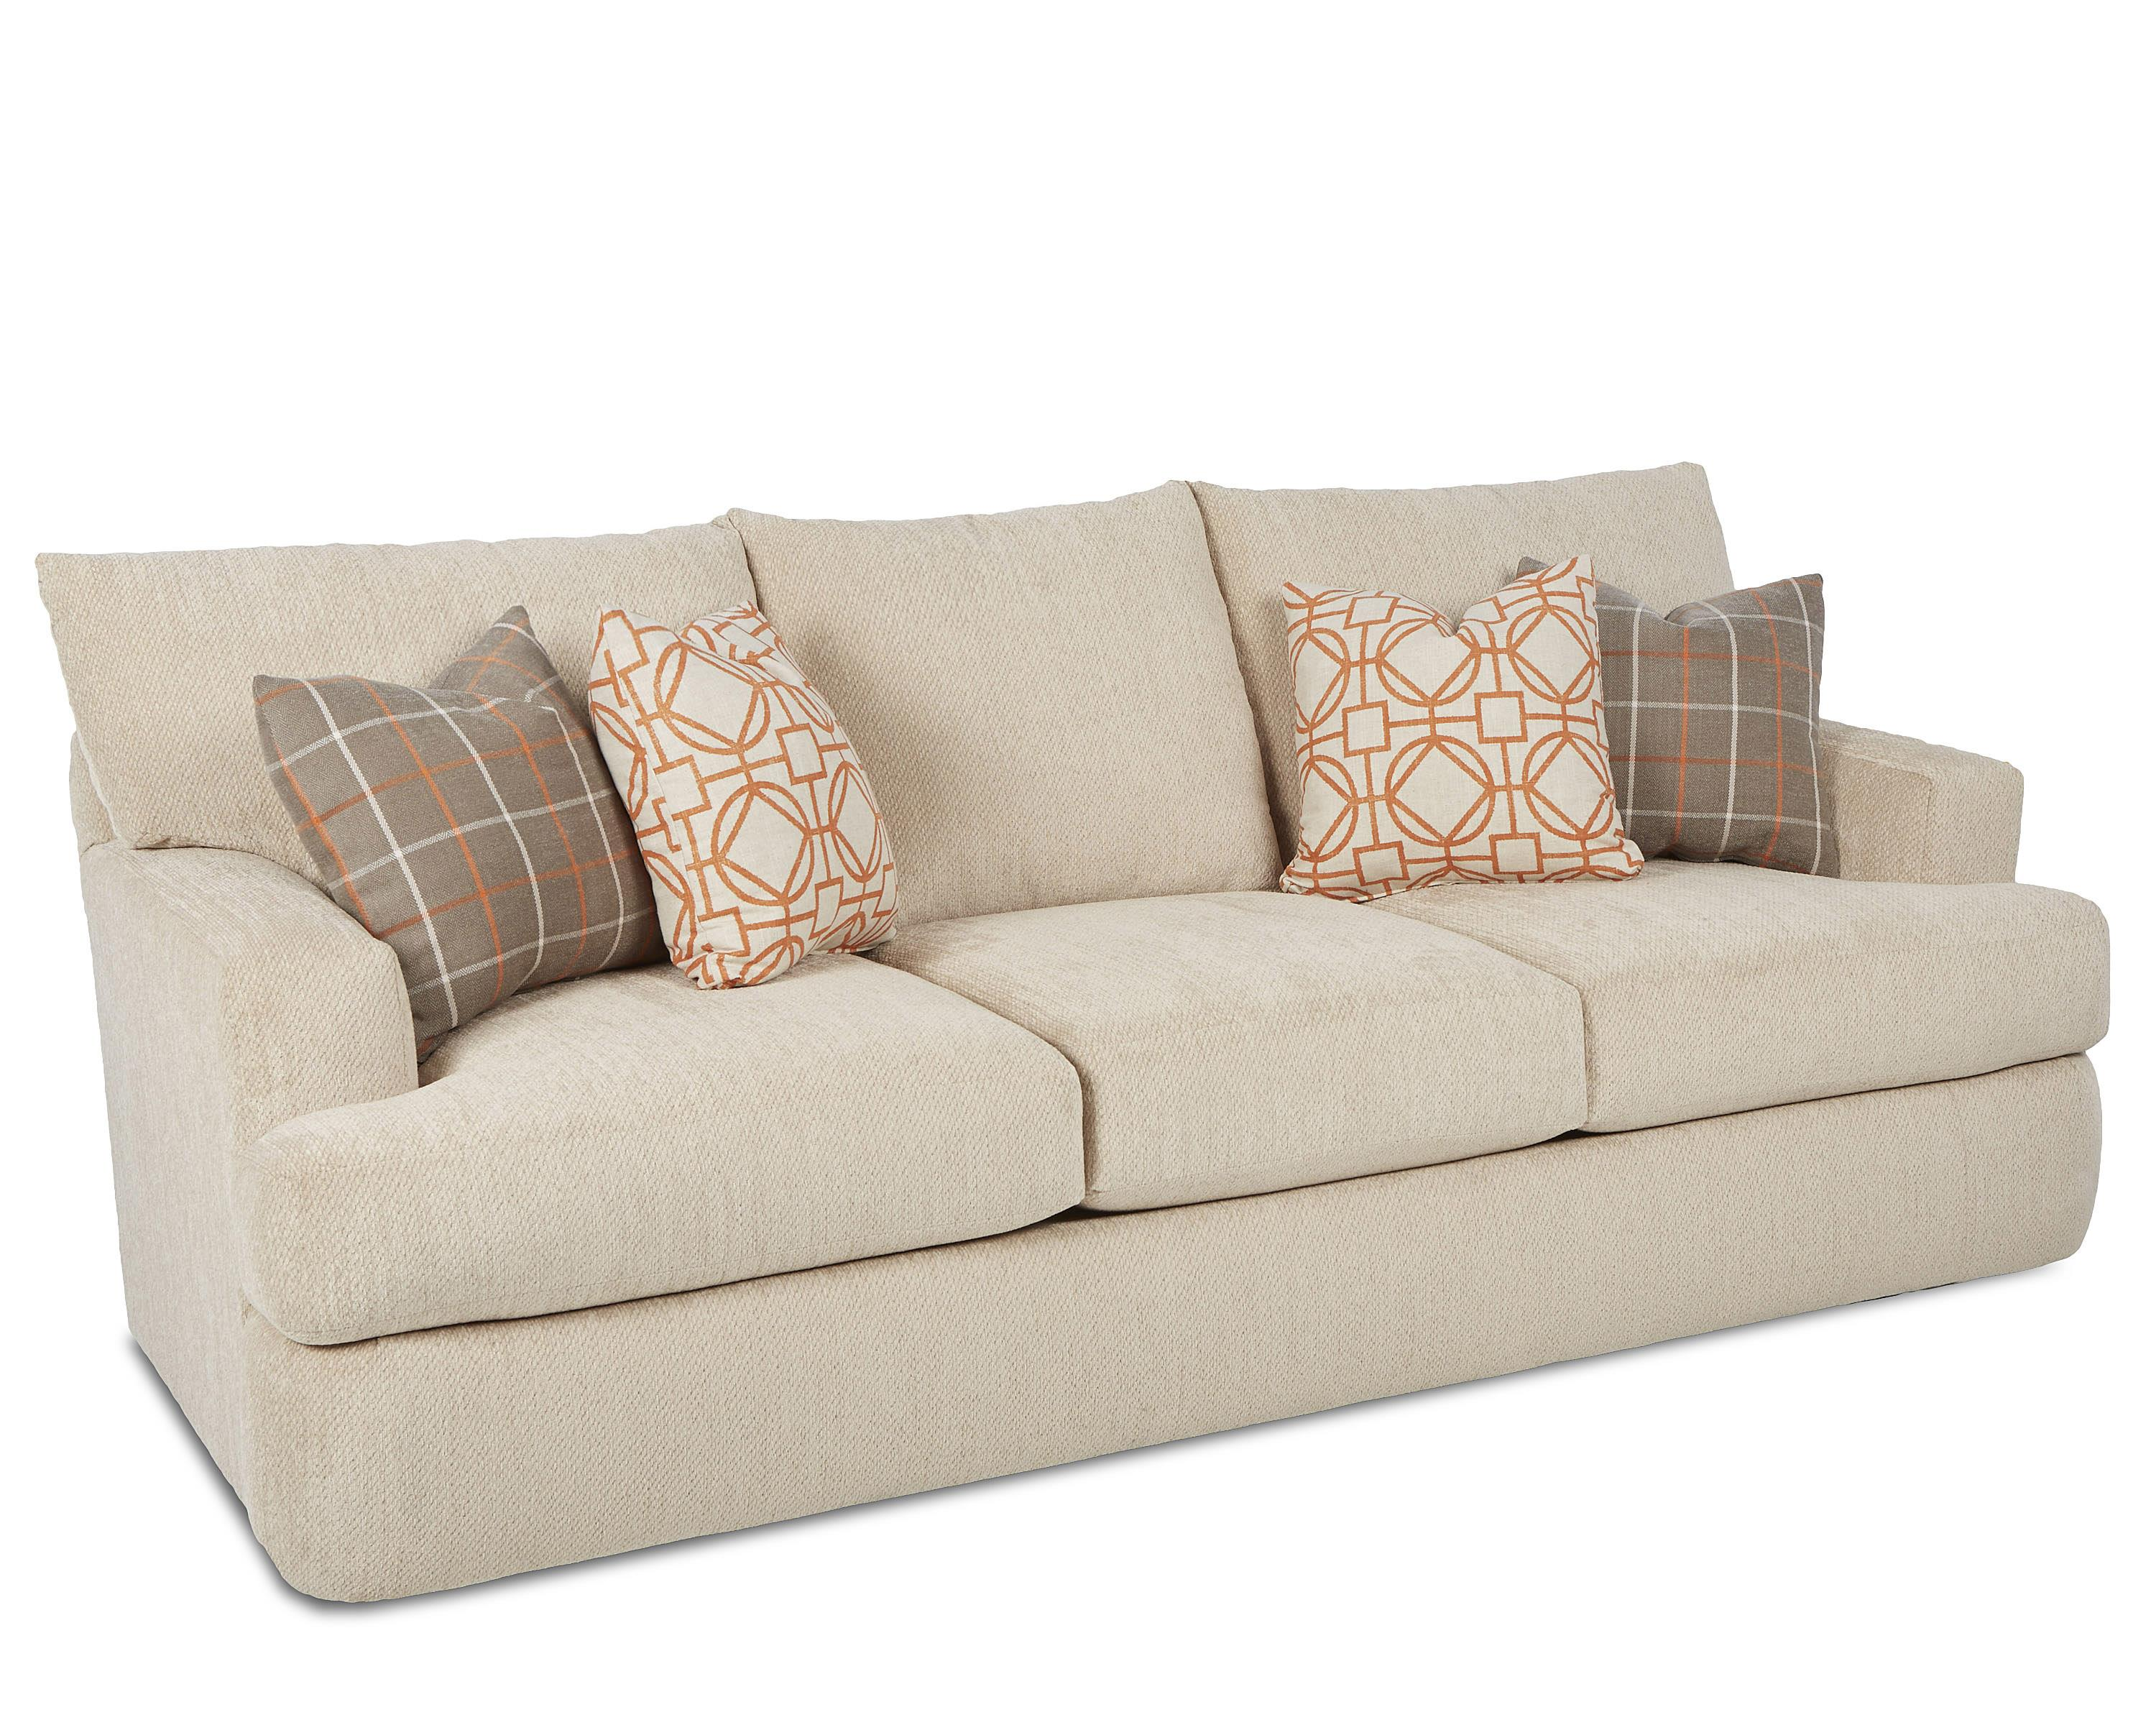 Contemporary Track Arm Sofa By Klaussner Wolf Furniture